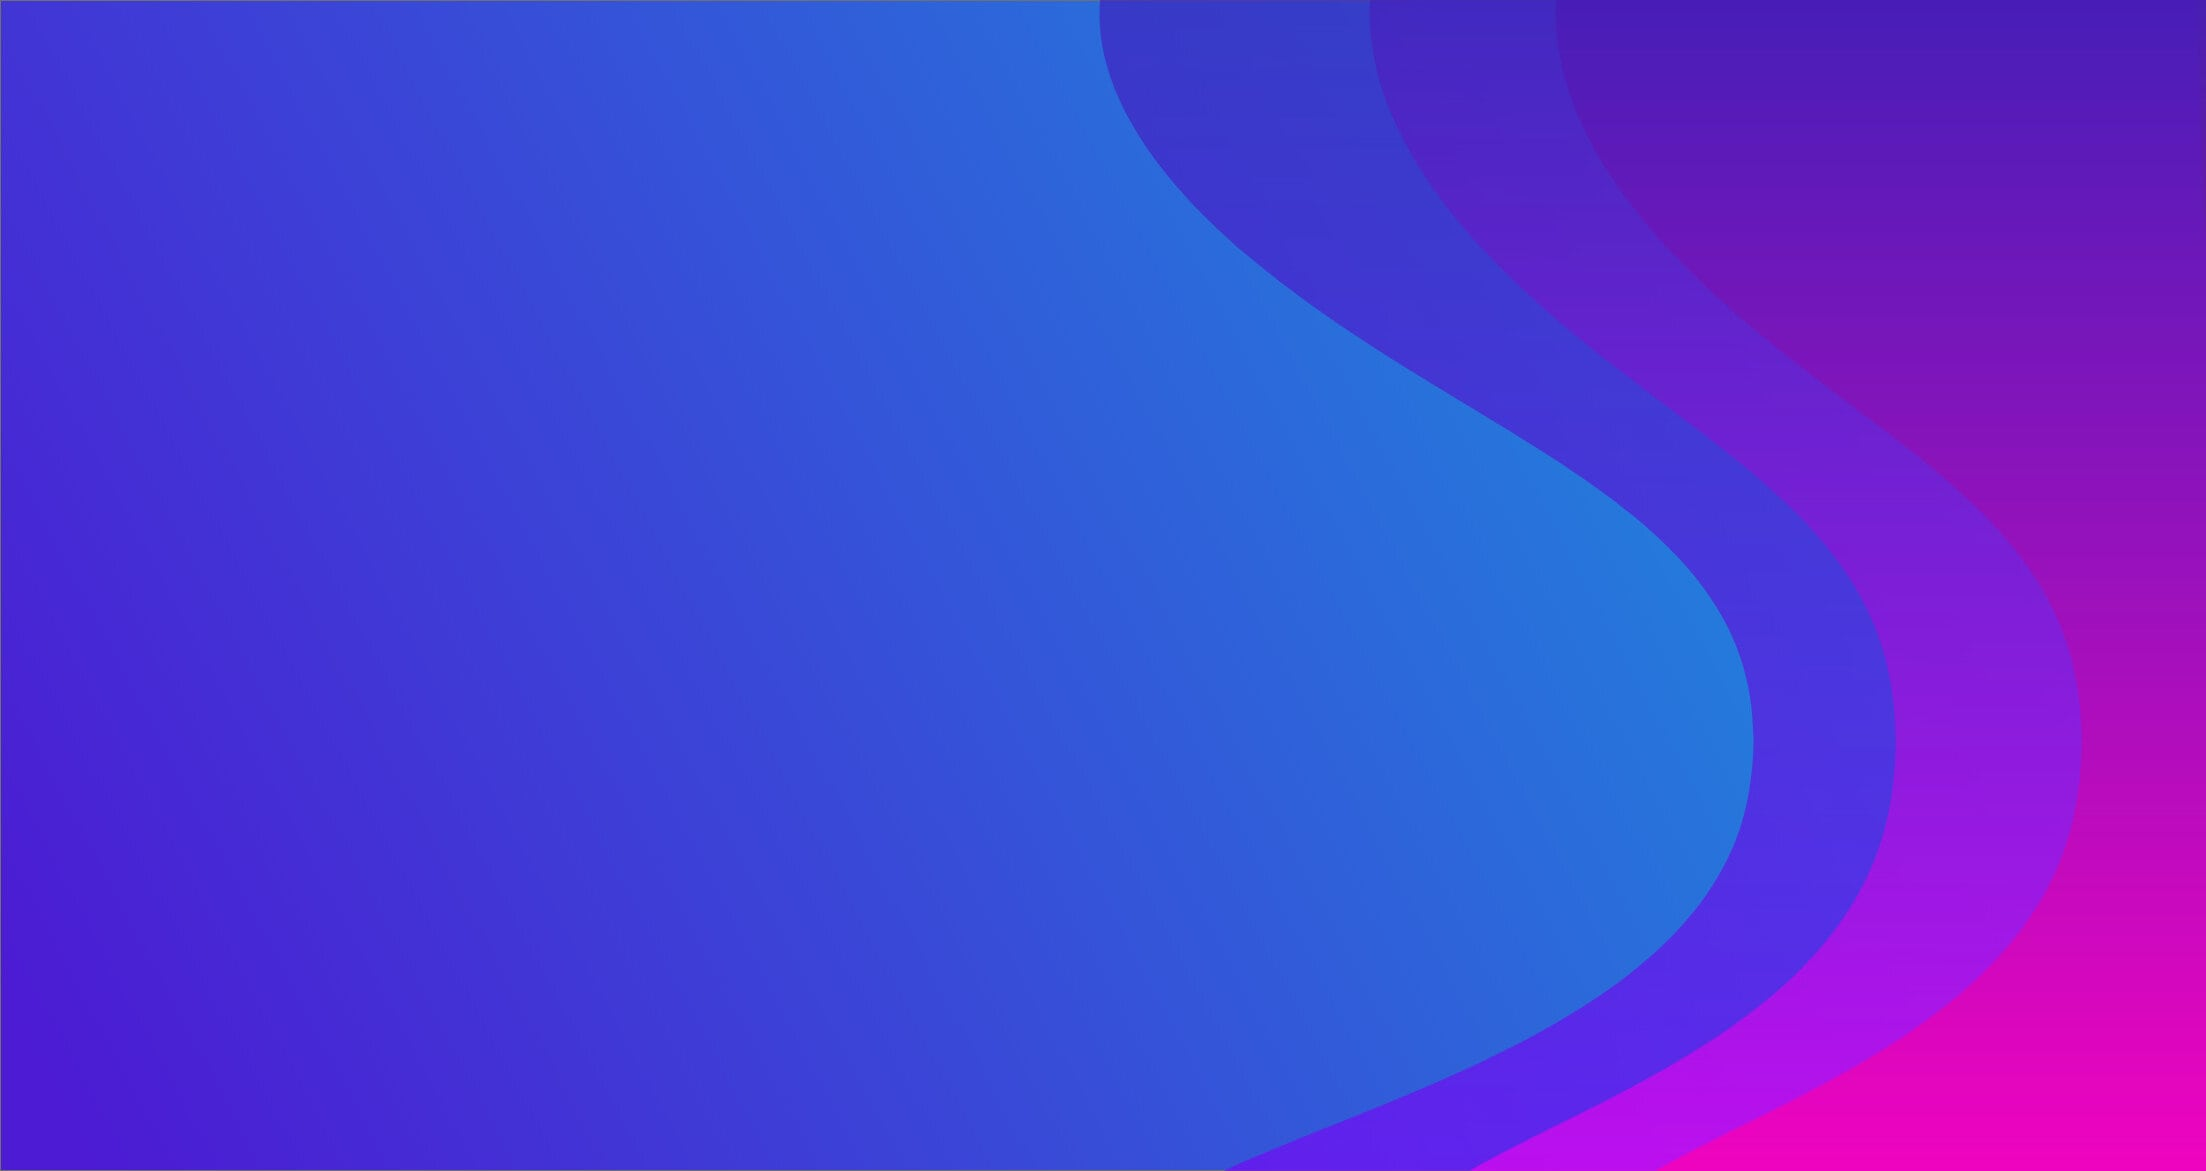 background picture of purple with blue gradient